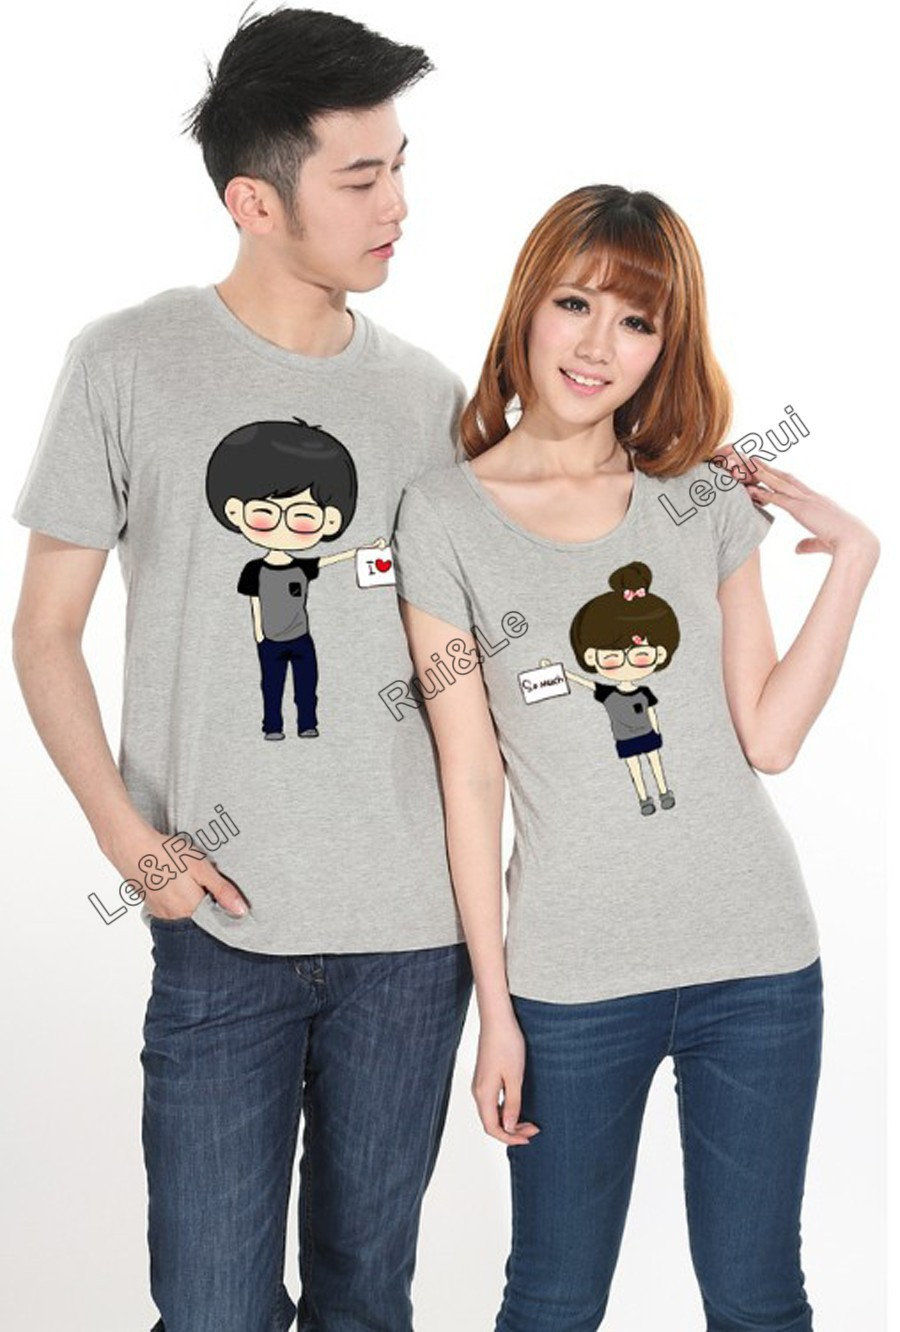 5b3e5667db men women fashion couple t shirt tops for 2015 lovers summer clothes  printed brand designer cartoon boy girl i love you bow lace